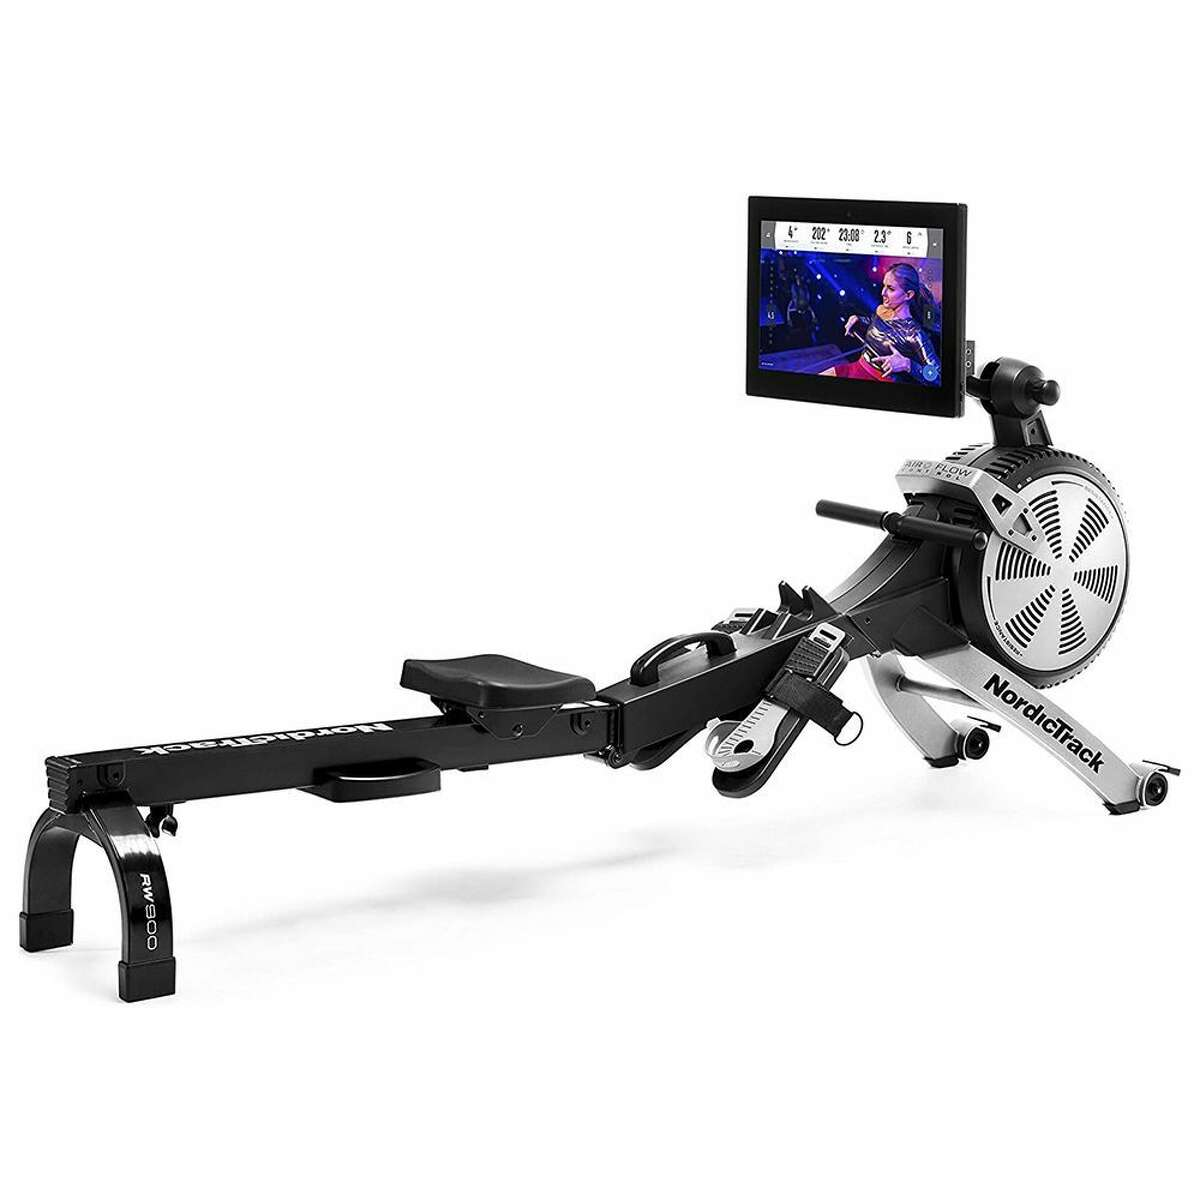 1) RW900 Rower: $1599.00 Shop Now 4.1 out of 5 stars300+ customer reviews NordicTrack has been making exercise equipment since 1975, and when it comes to at-home rowing machines, the RW900 is the one to beat. The ergonomic, molded seat is made for comfort, and the 22-inch touchscreen display is easy to read. A 1-year iFit membership is included with your rower for personalized training that aligns with 26 coach-controlled resistance levels built into your machine. Even as you're sweating like crazy, the RW900 works quietly. When you're done, its